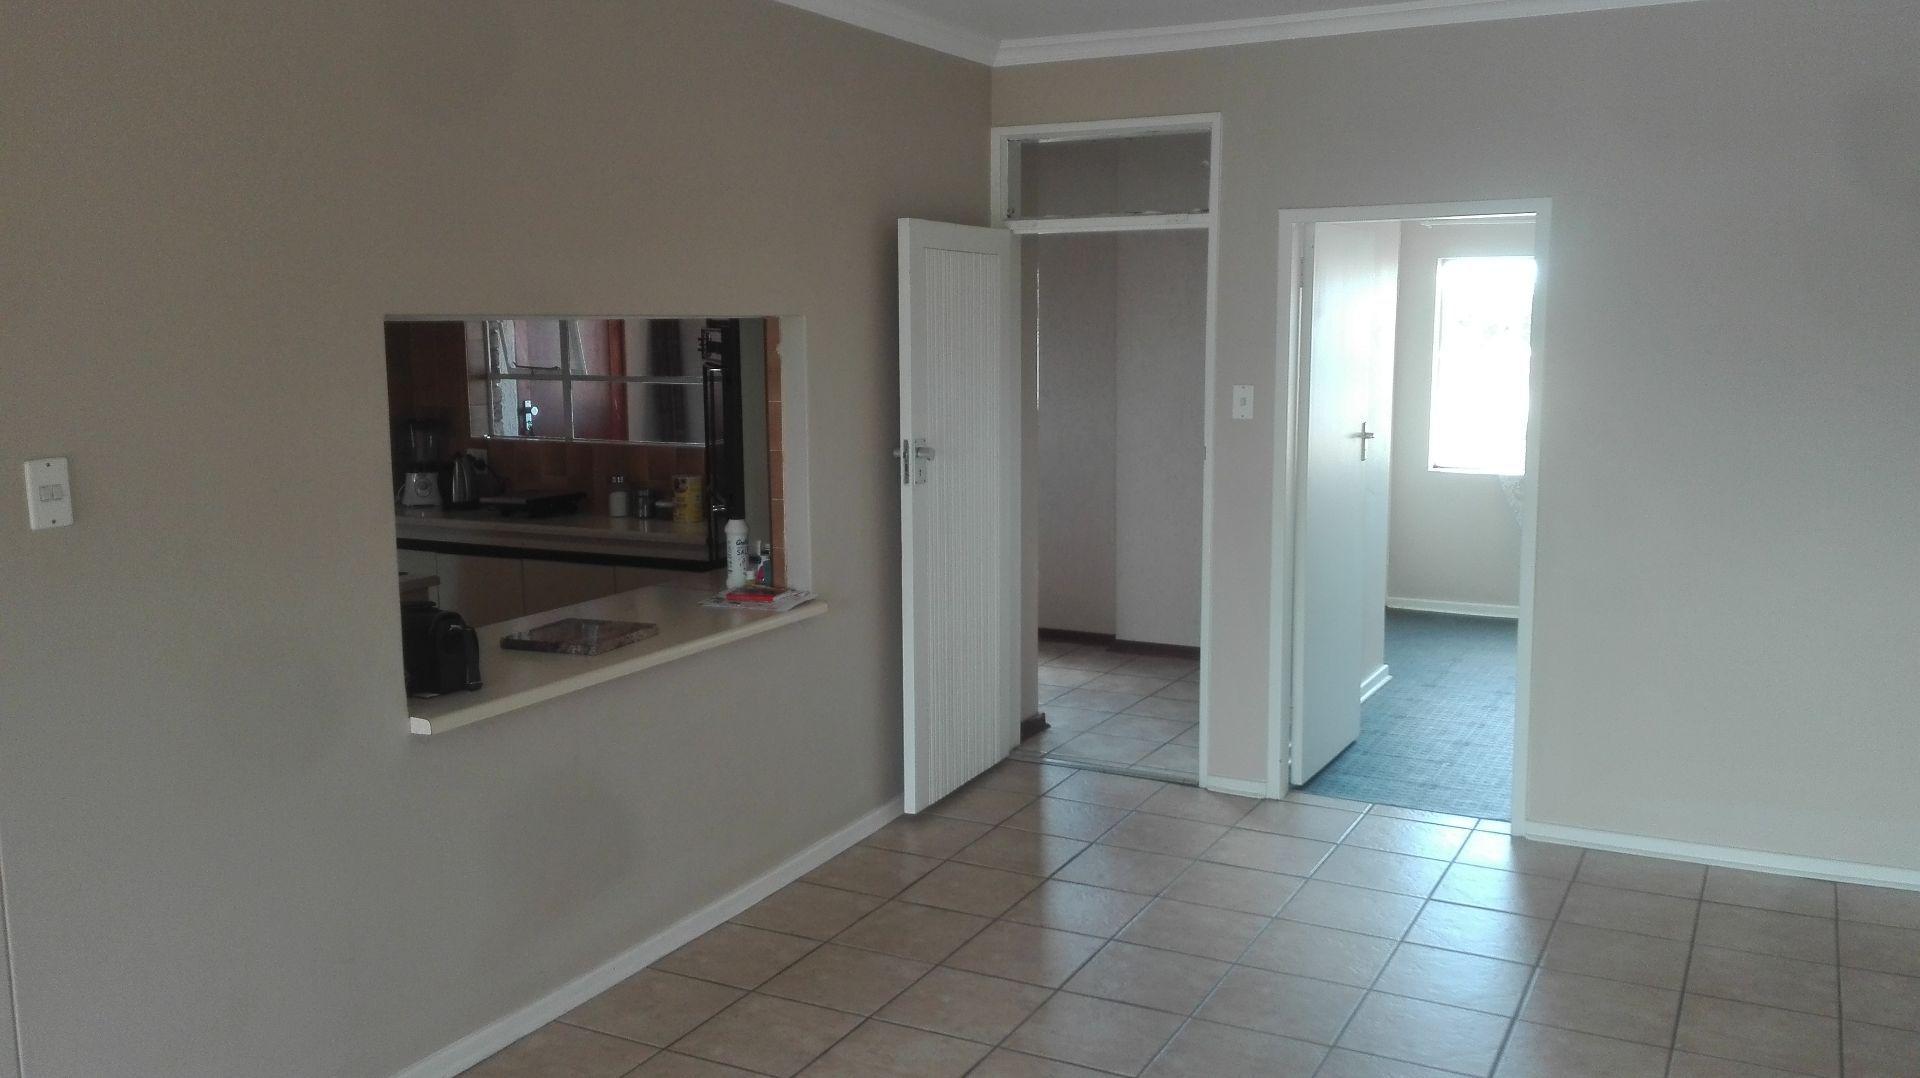 Apartment in Central - Open plan kitchen